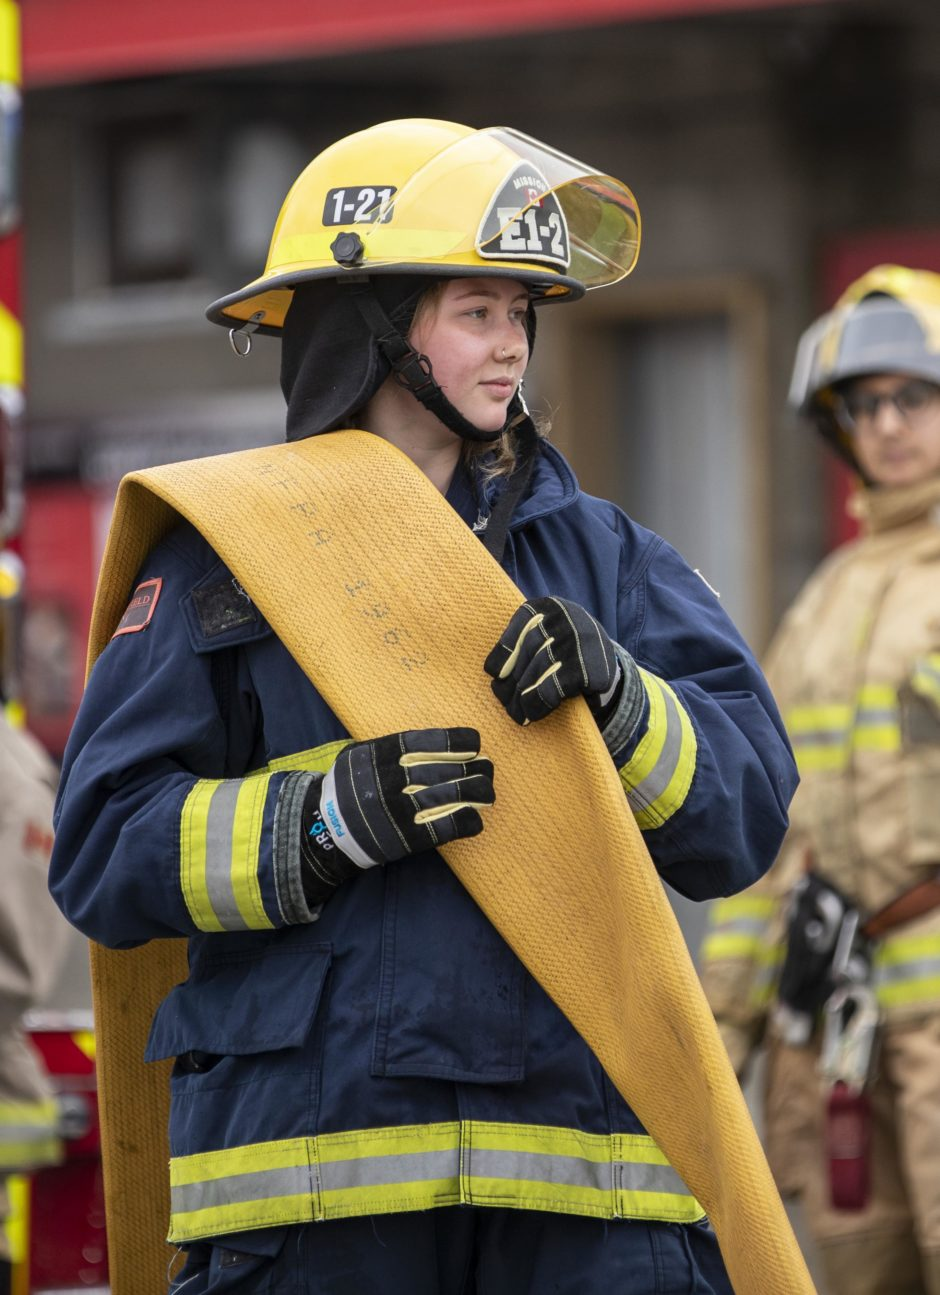 A teenage girl in firefighting gear holds a firehose.